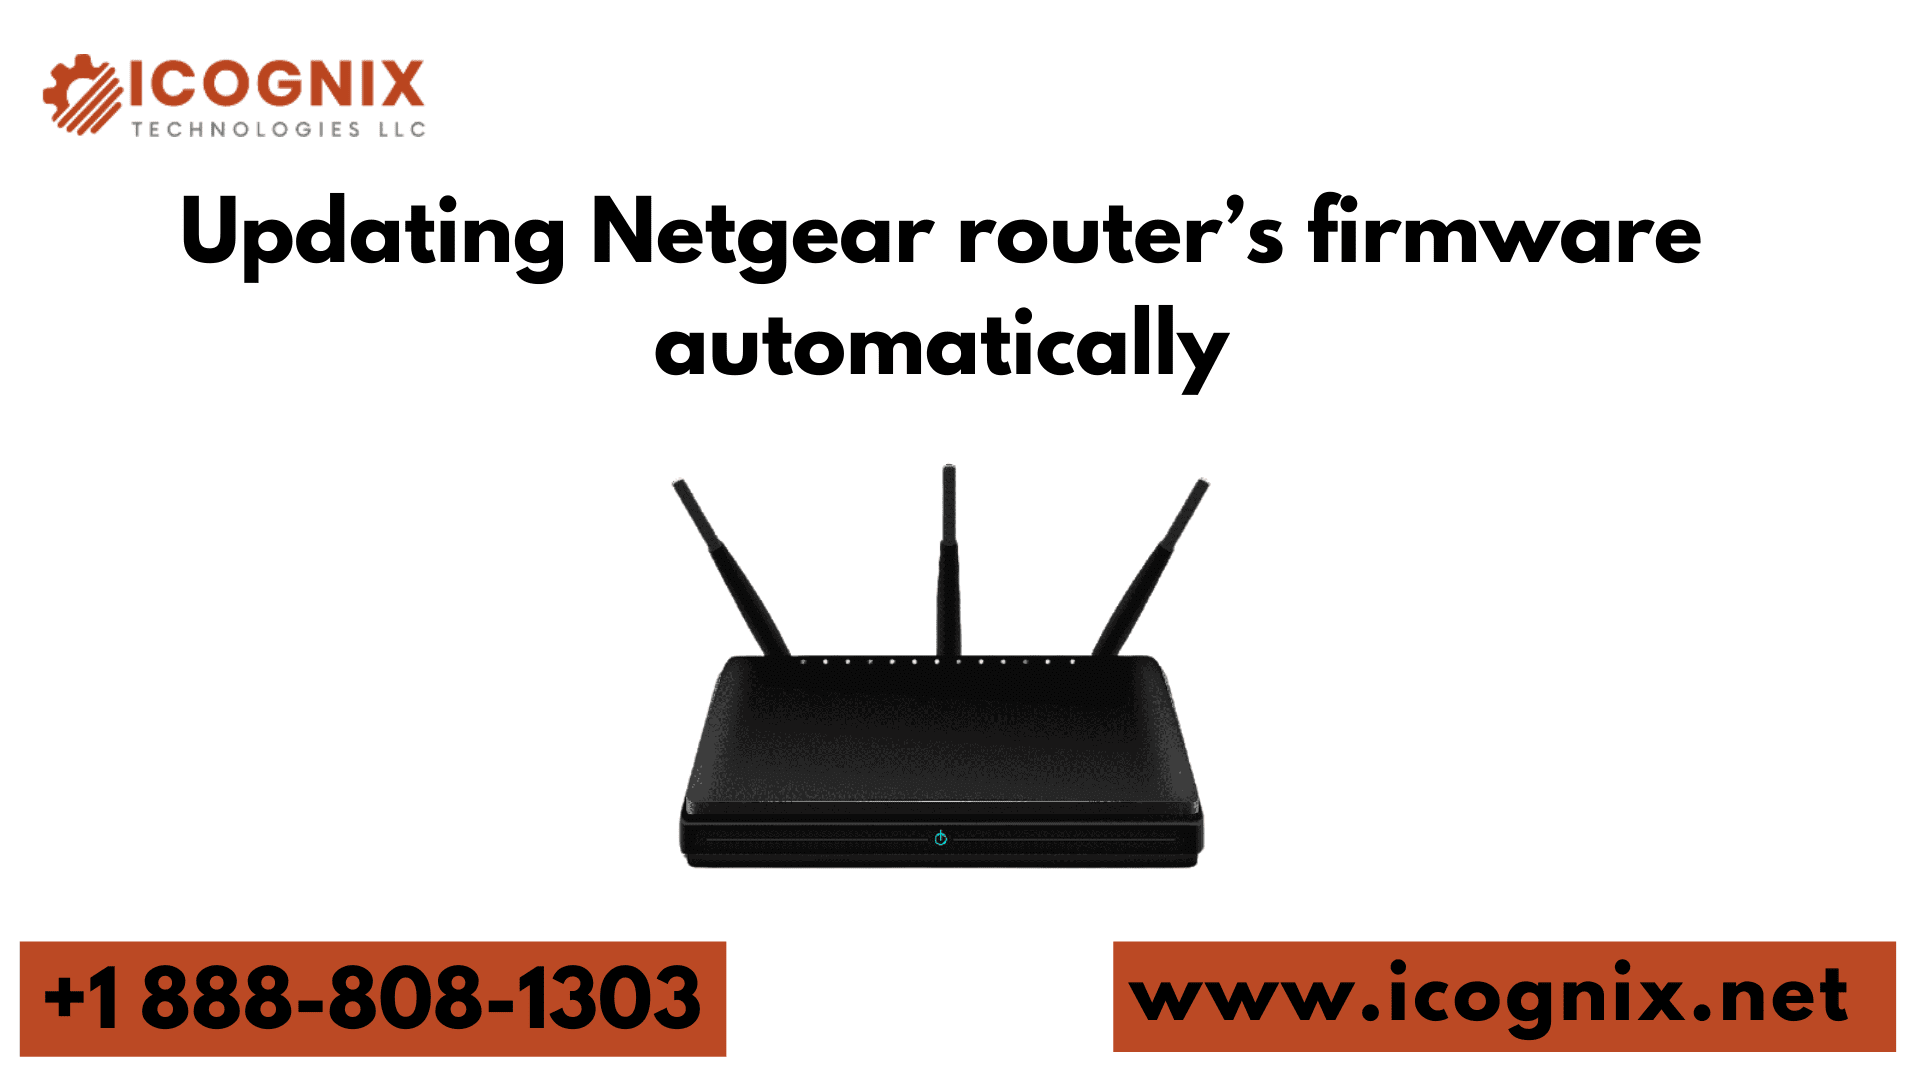 Updating Netgear router's firmware automatically